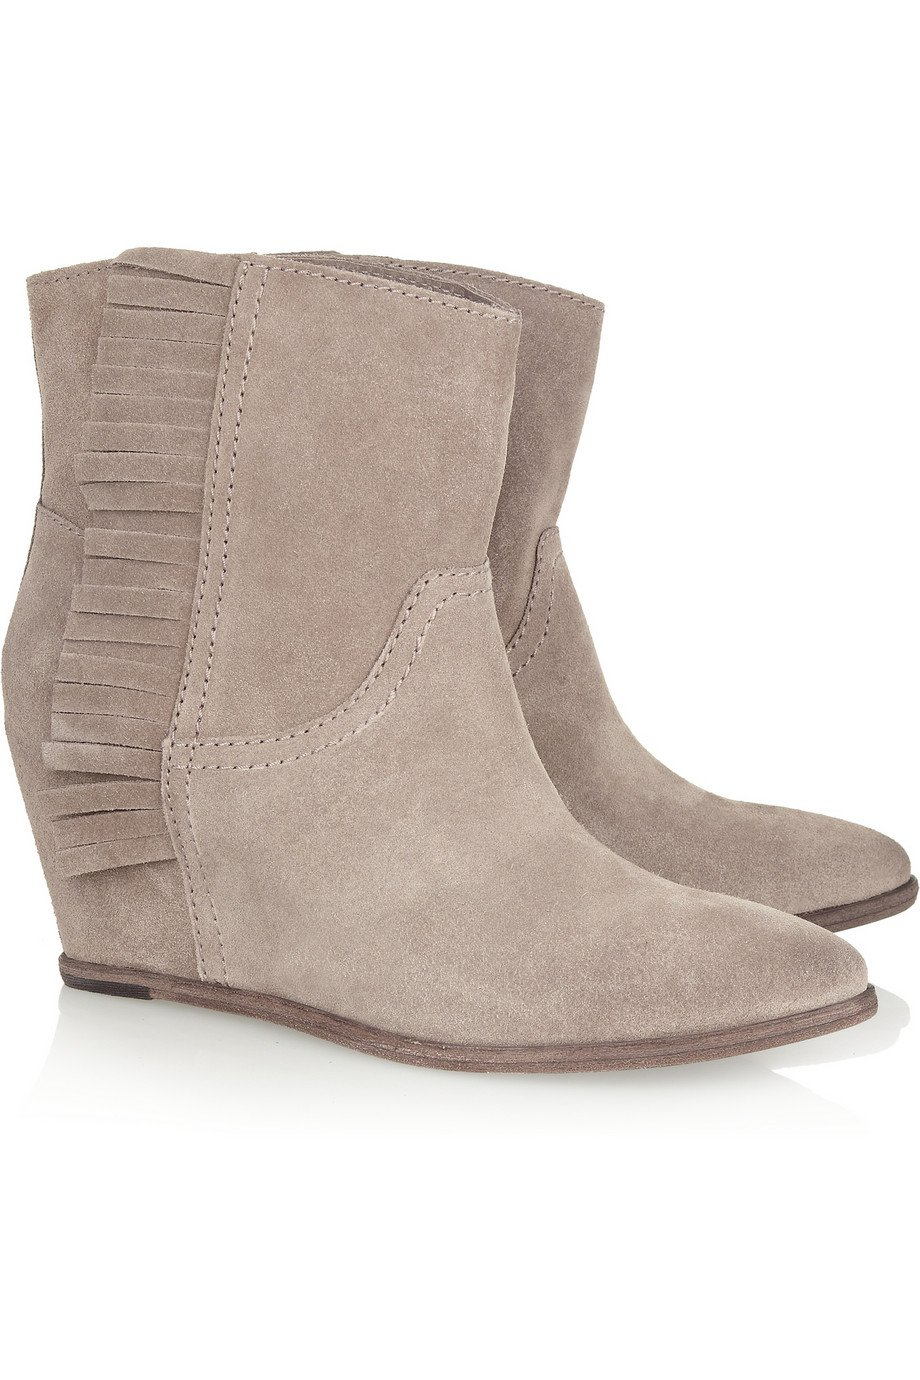 ash suede wedge boots in beige taupe lyst